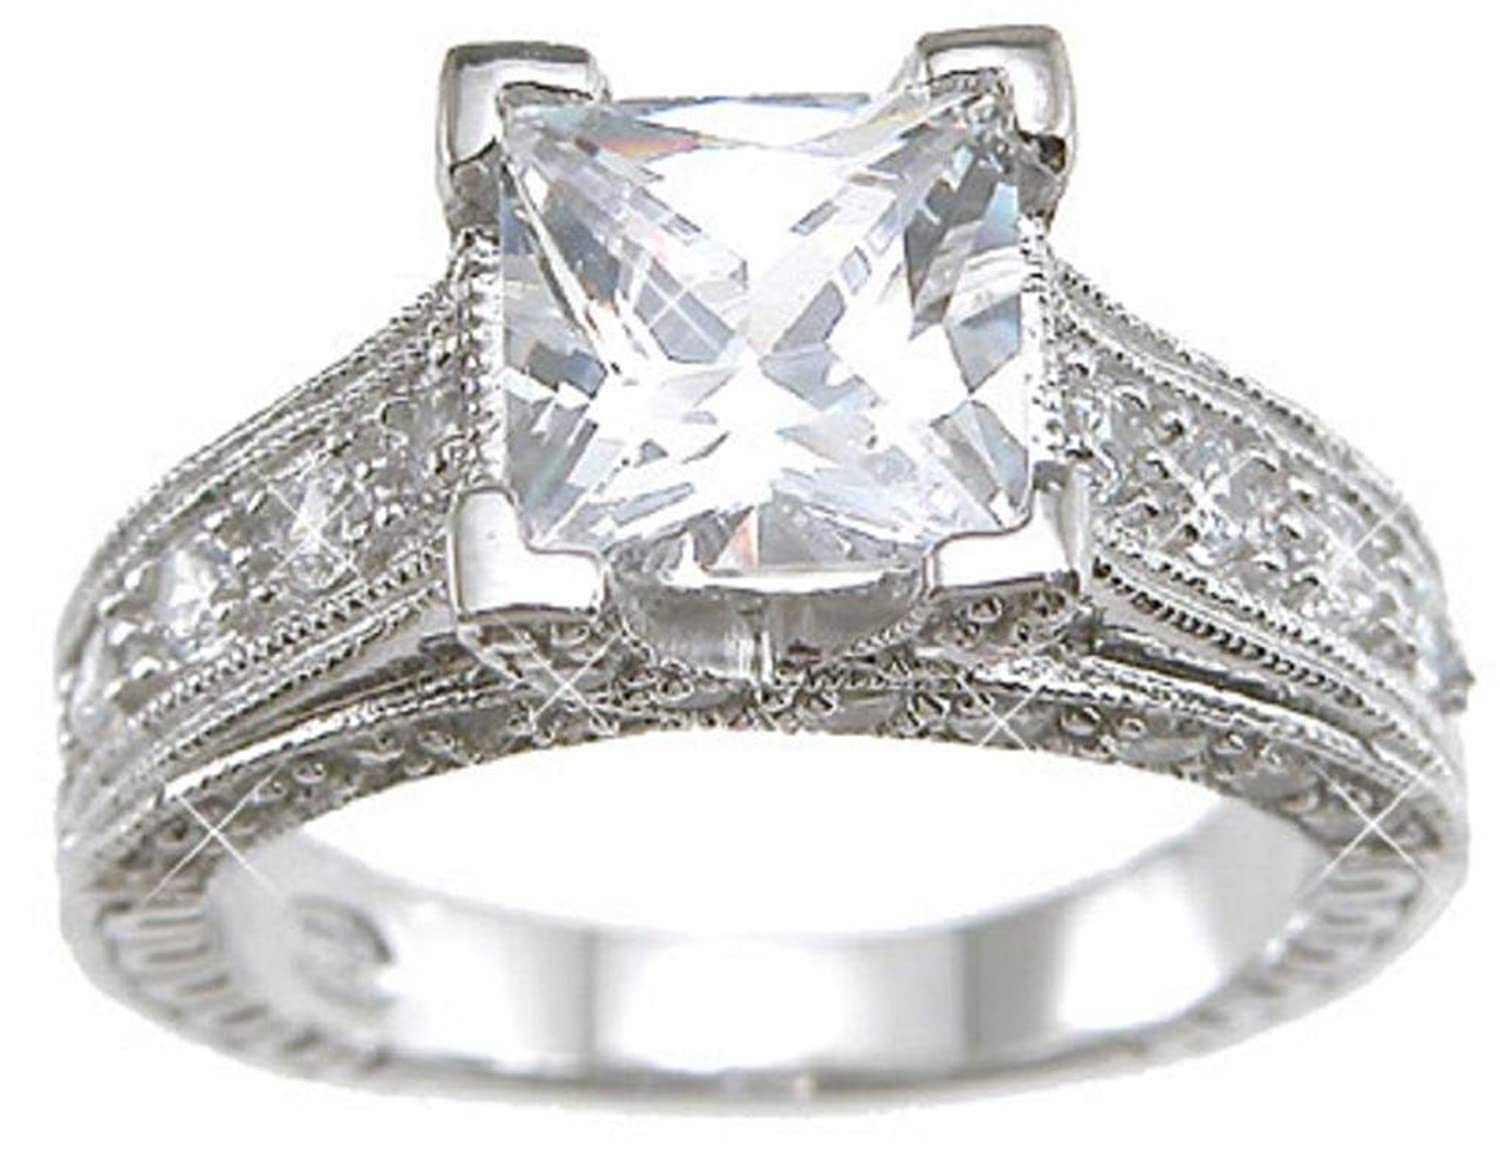 Superieur Amazon.com: Sterling Silver Cubic Zirconia CZ Princess Cut Engagement  Promise Ring Size 5 6 7 8 9 And 10: Jewelry